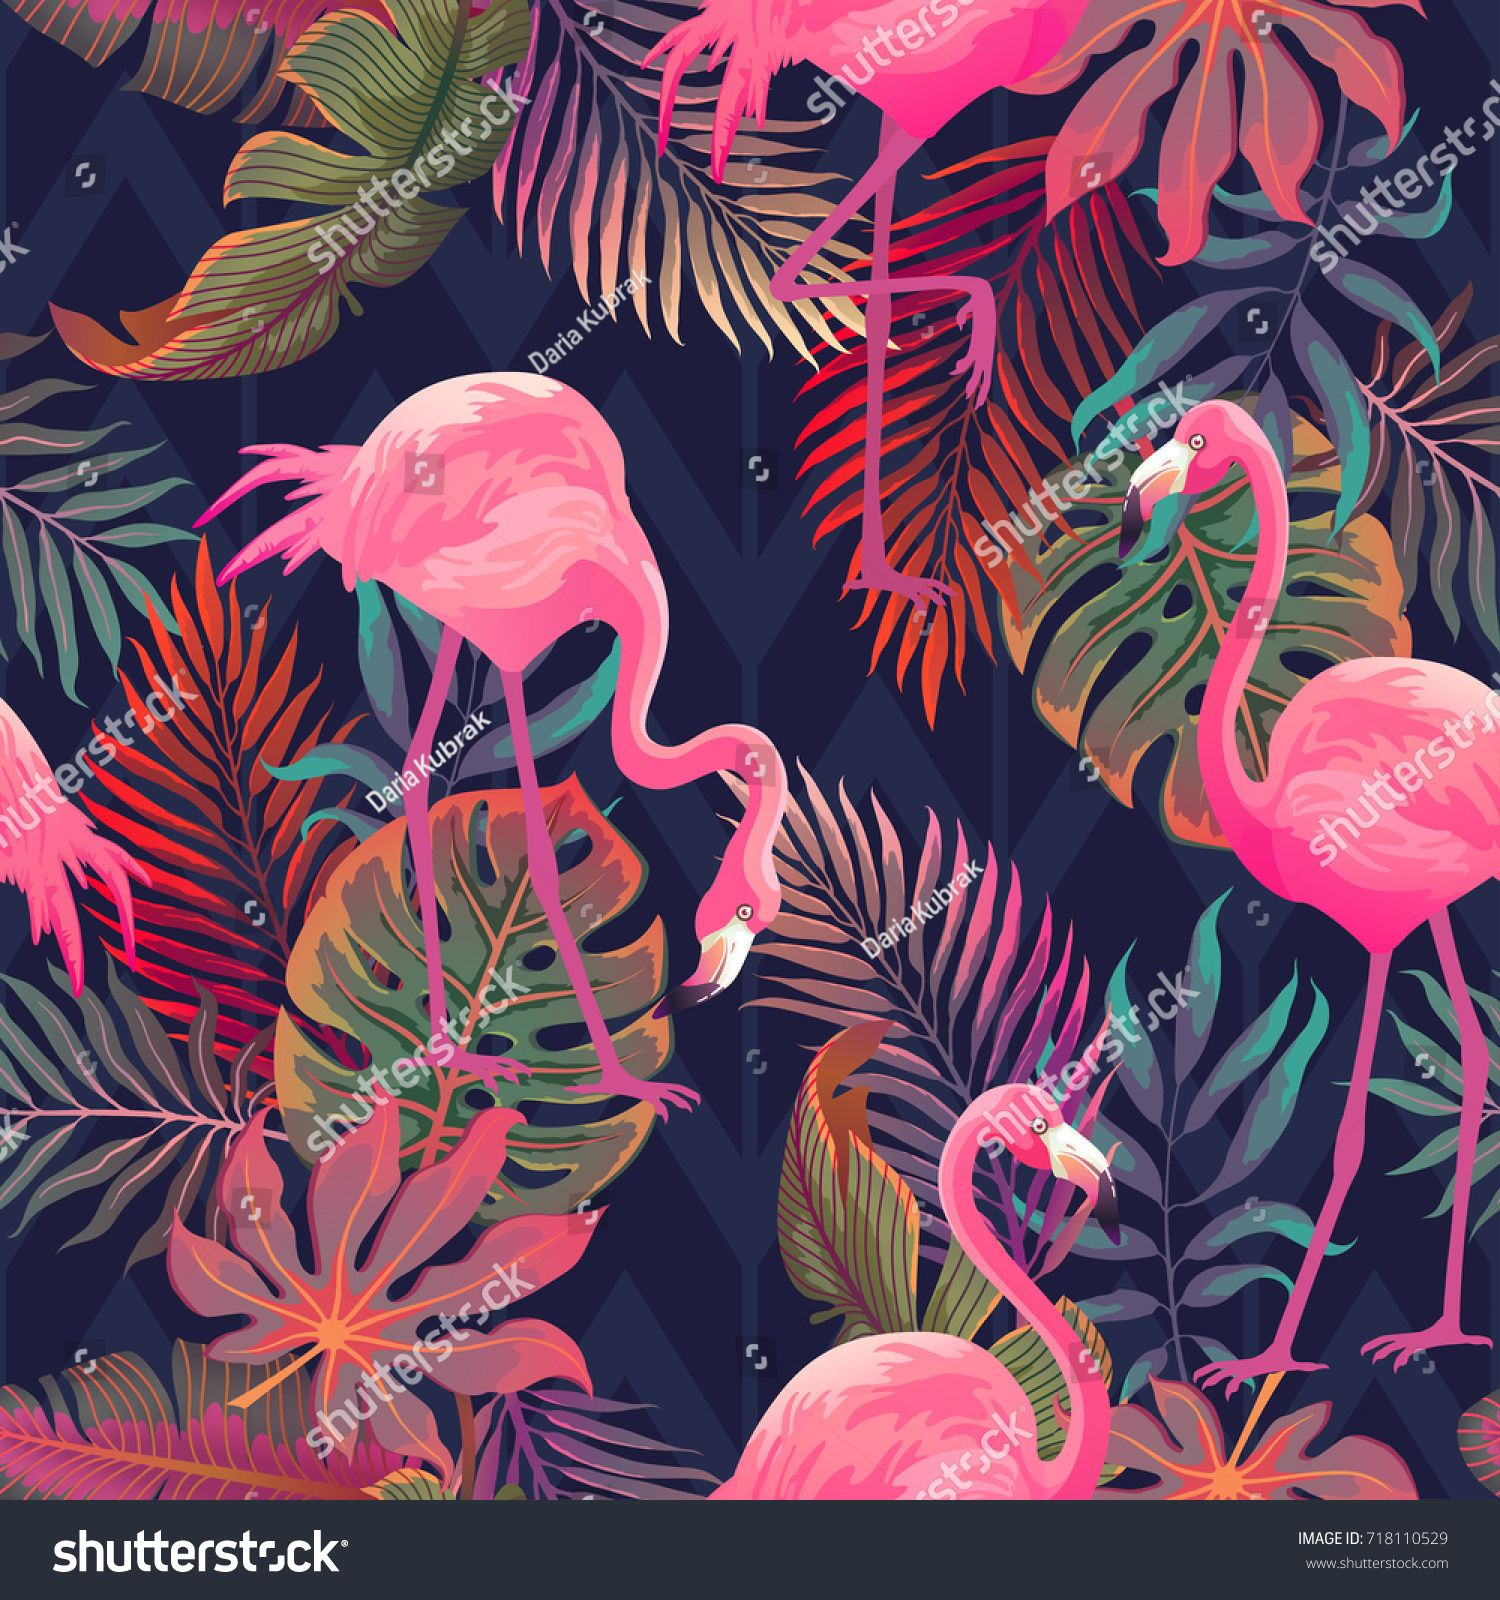 87f0b9dd3a Beautiful seamless vector tropical pattern with pink flamingo and palm  leaves on dark background. Abstract summer texture pattern#pink#flamingo# tropical